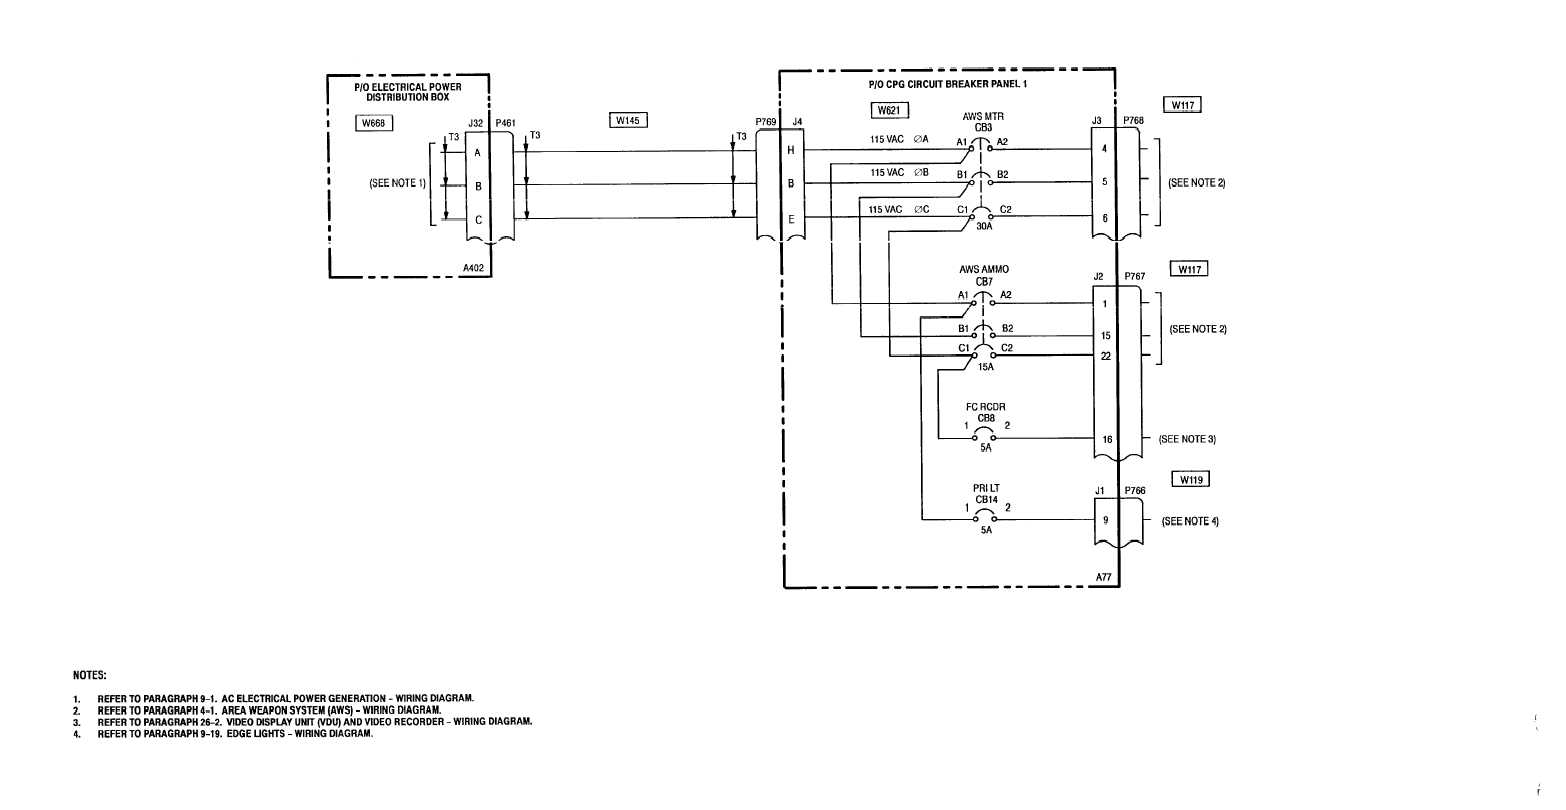 e30 m50 wiring diagram sony xplod cdx l550x get free image about